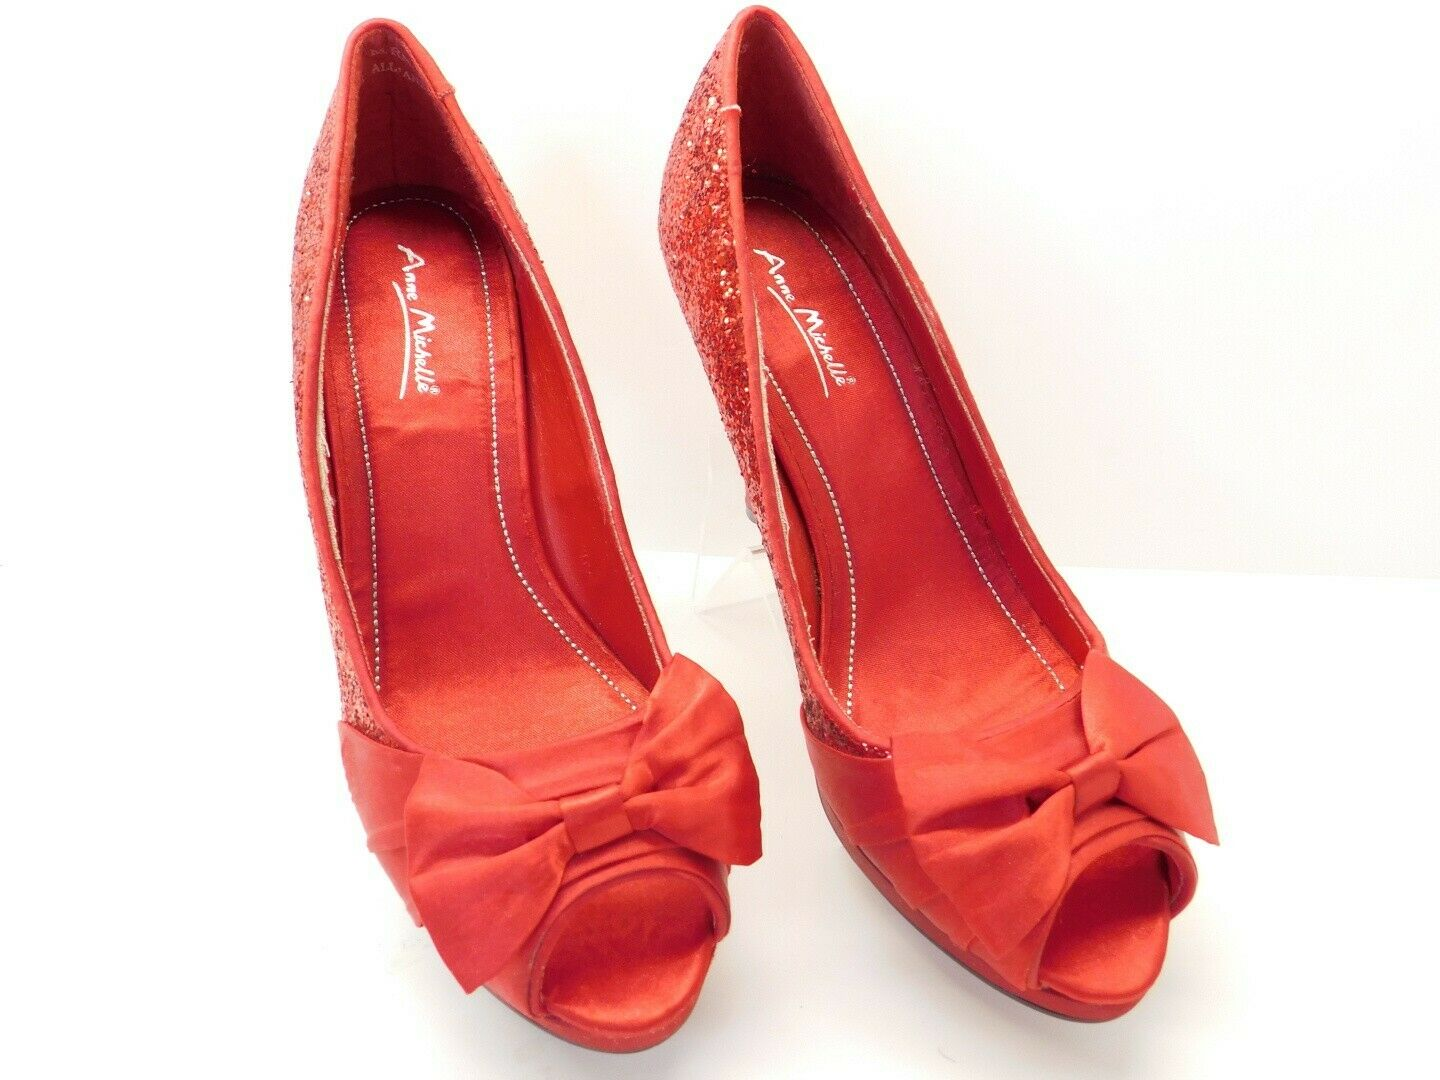 Glittery & Satin Bow Red Anna Michelle Shoes Size 9